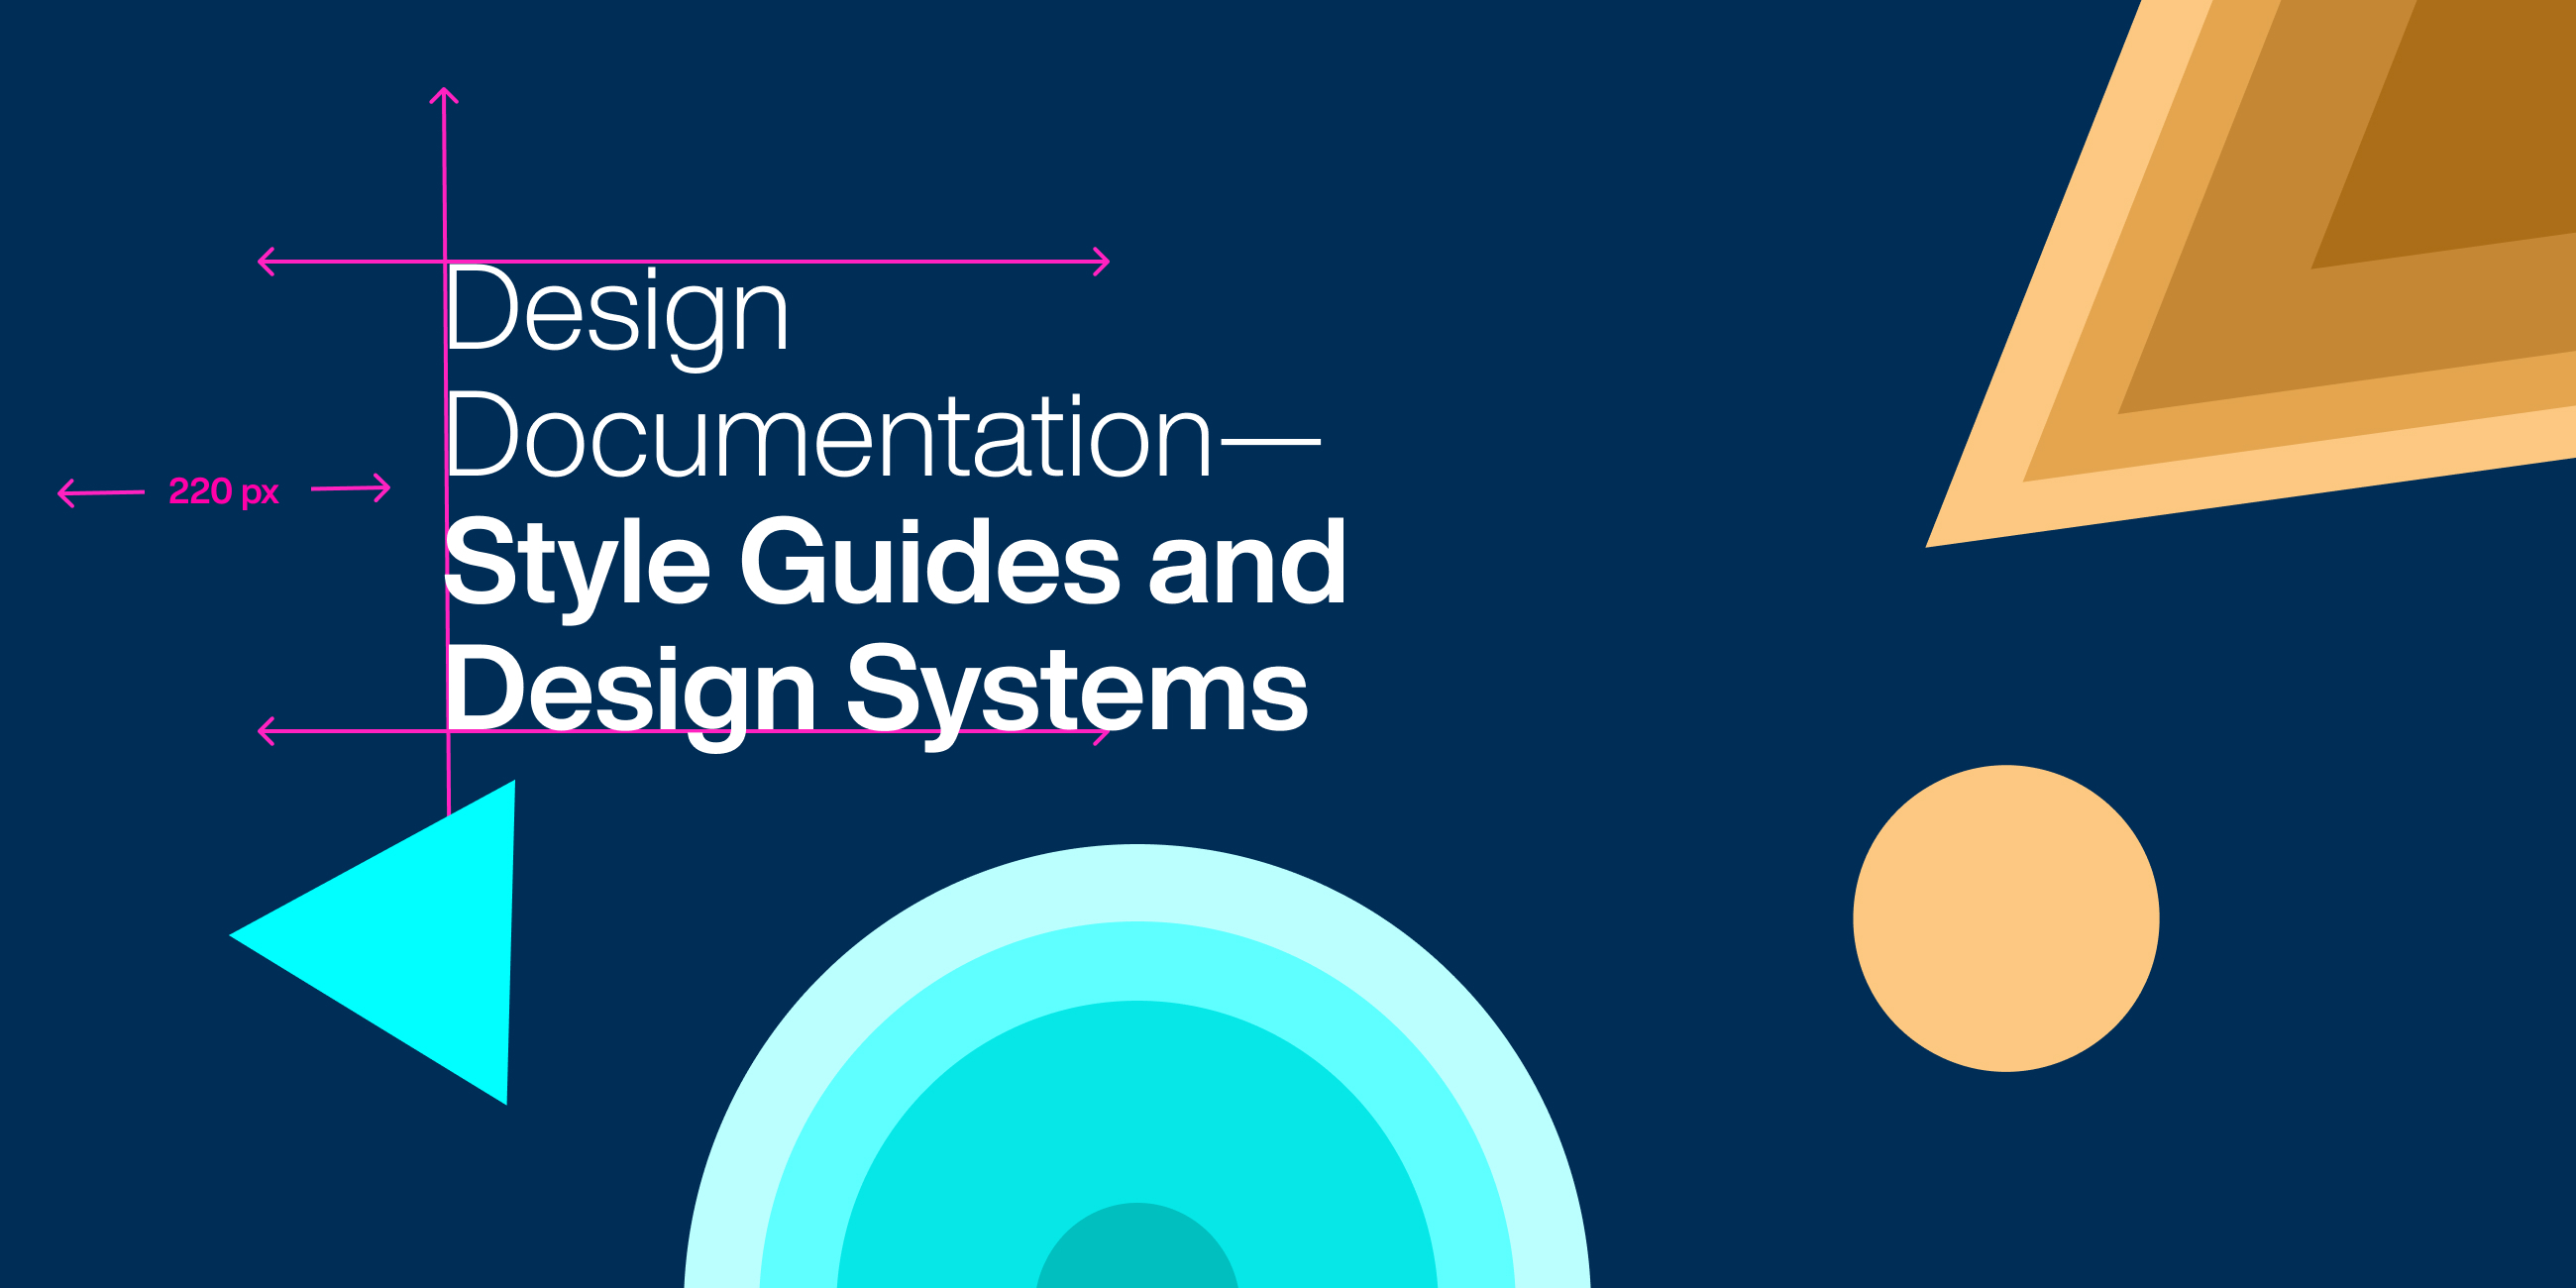 Cover photo for the blog - documentation of style guide and design system